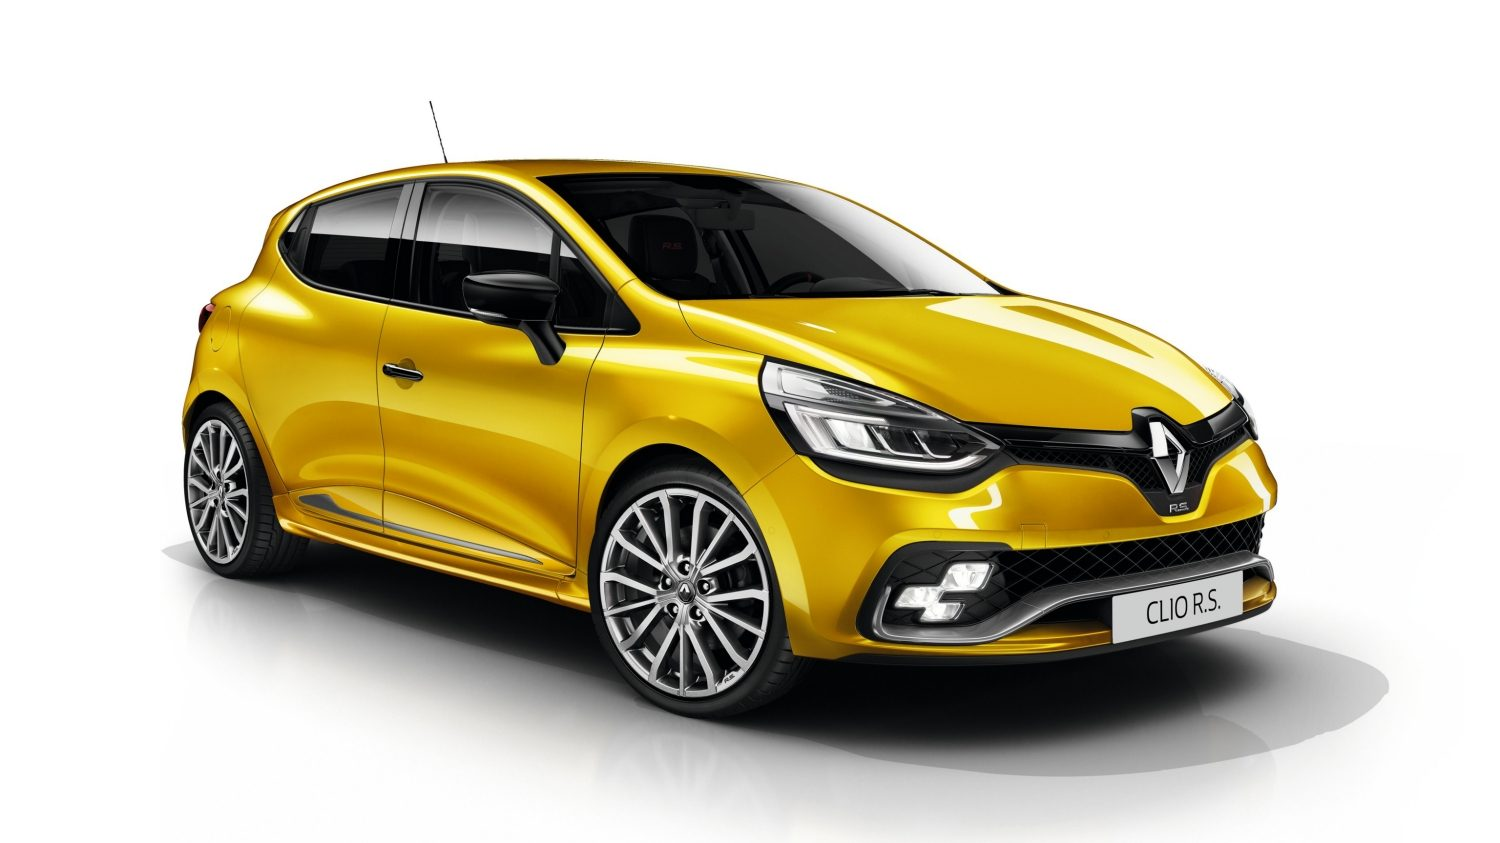 renault clio rs ph2 liquid yellow.jpg.ximg .l full m.smart  - La voiture occasion en france et les offres automobile